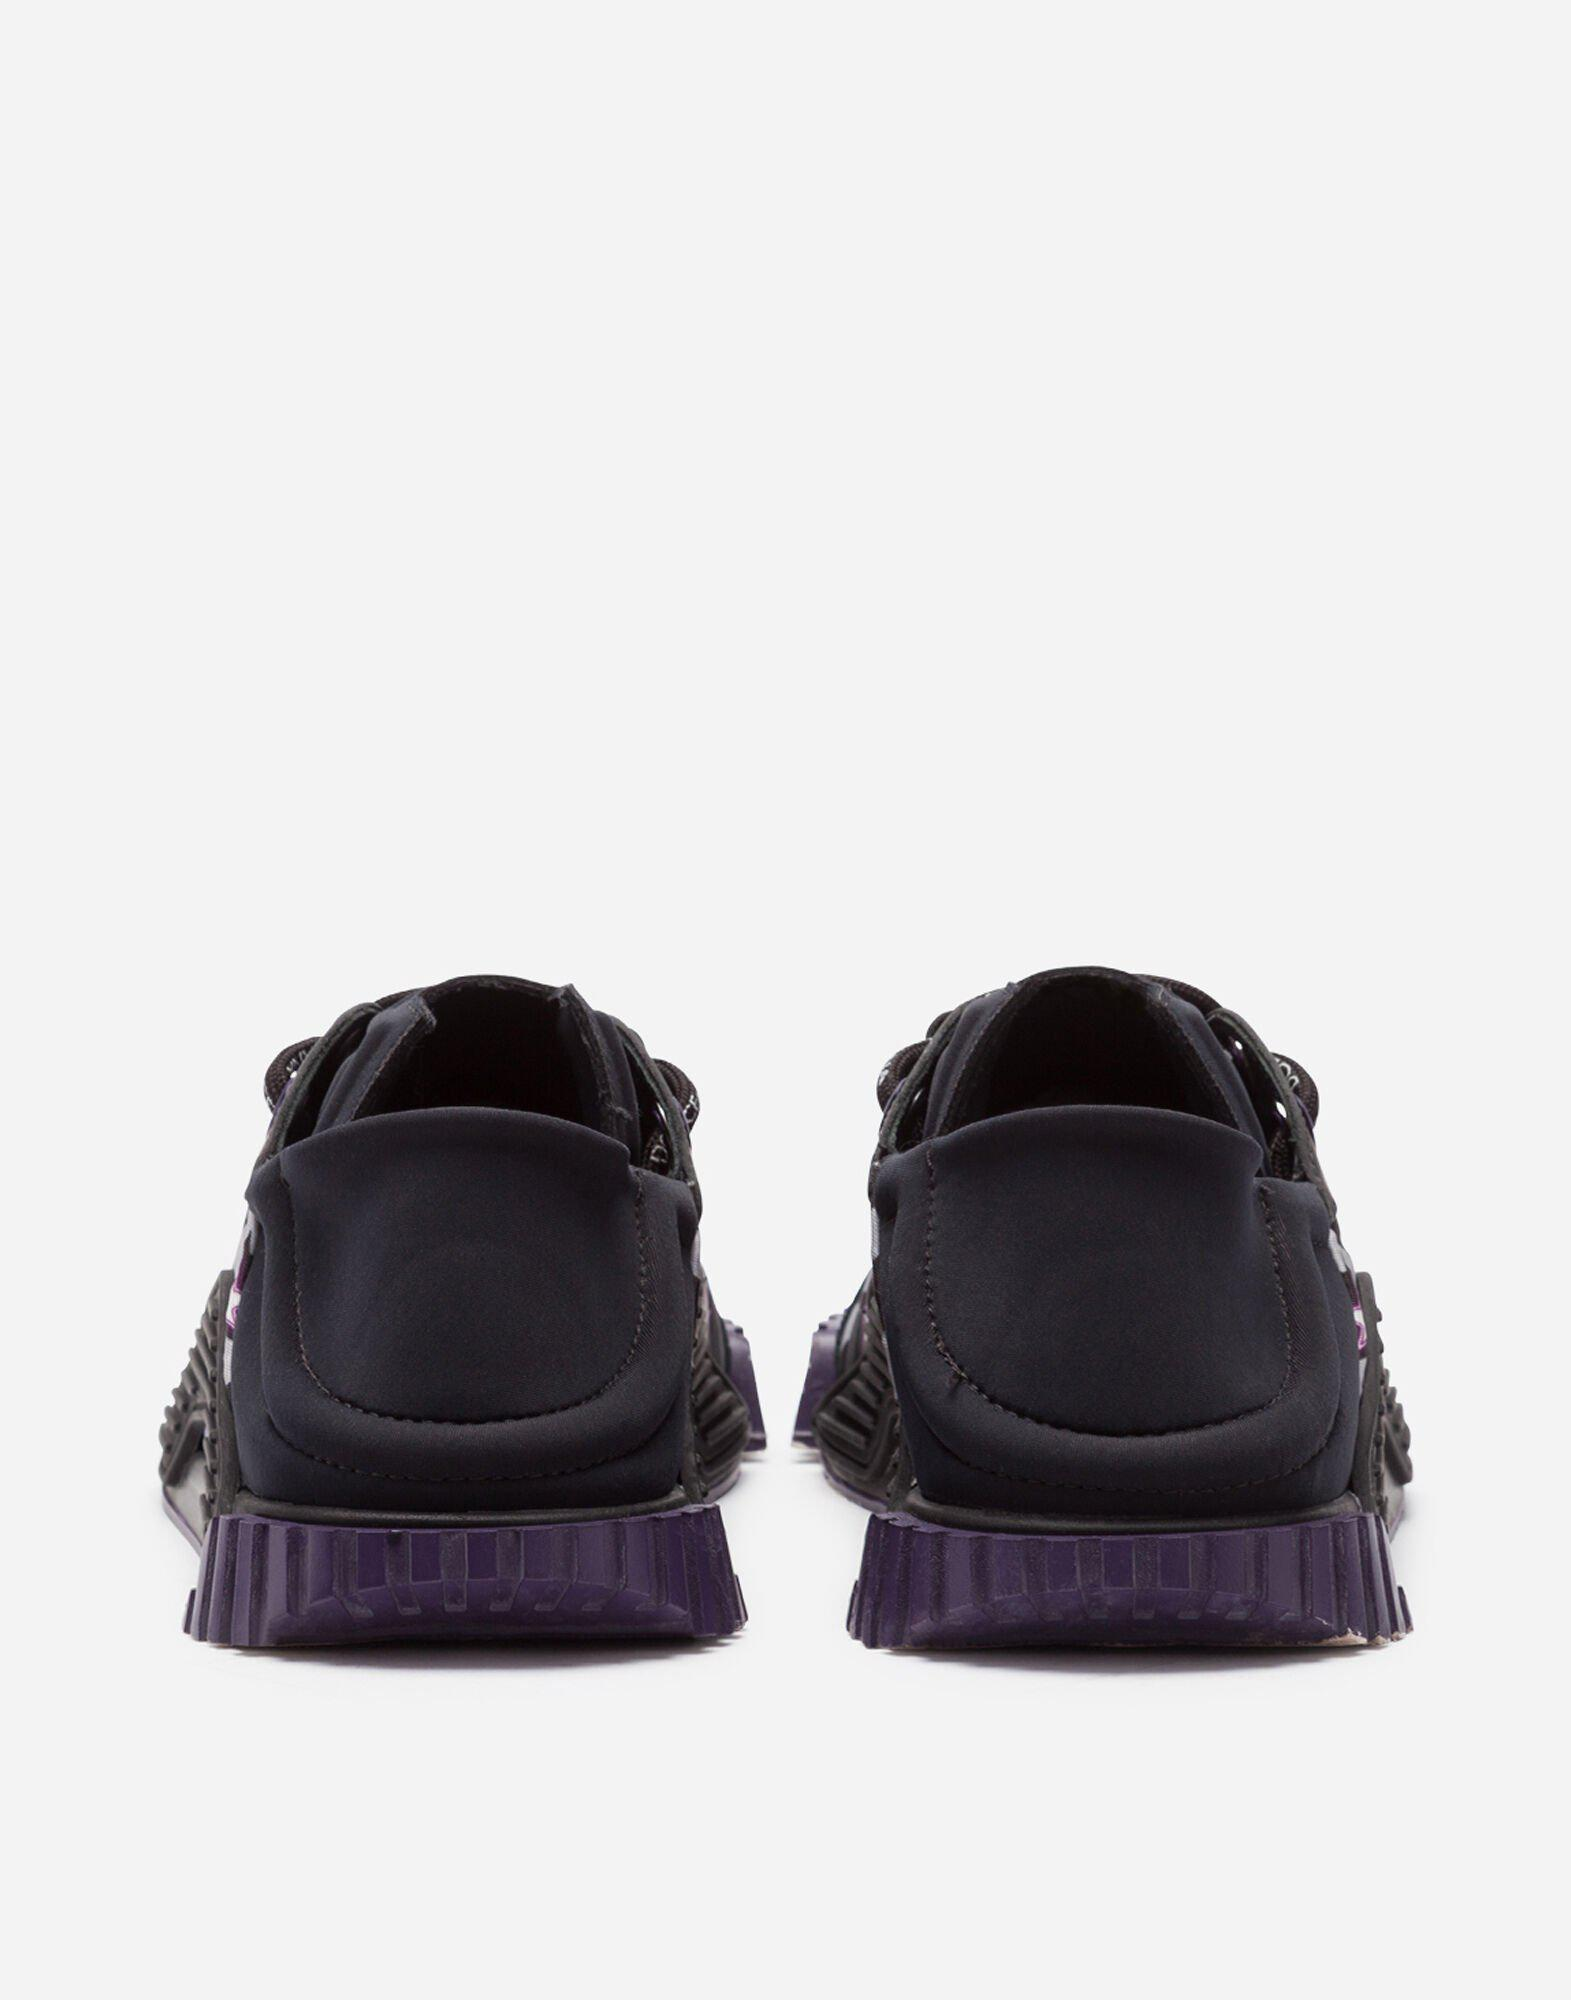 Slip-on NS1 sneakers in mixed materials with jungle print and purple bottom 2